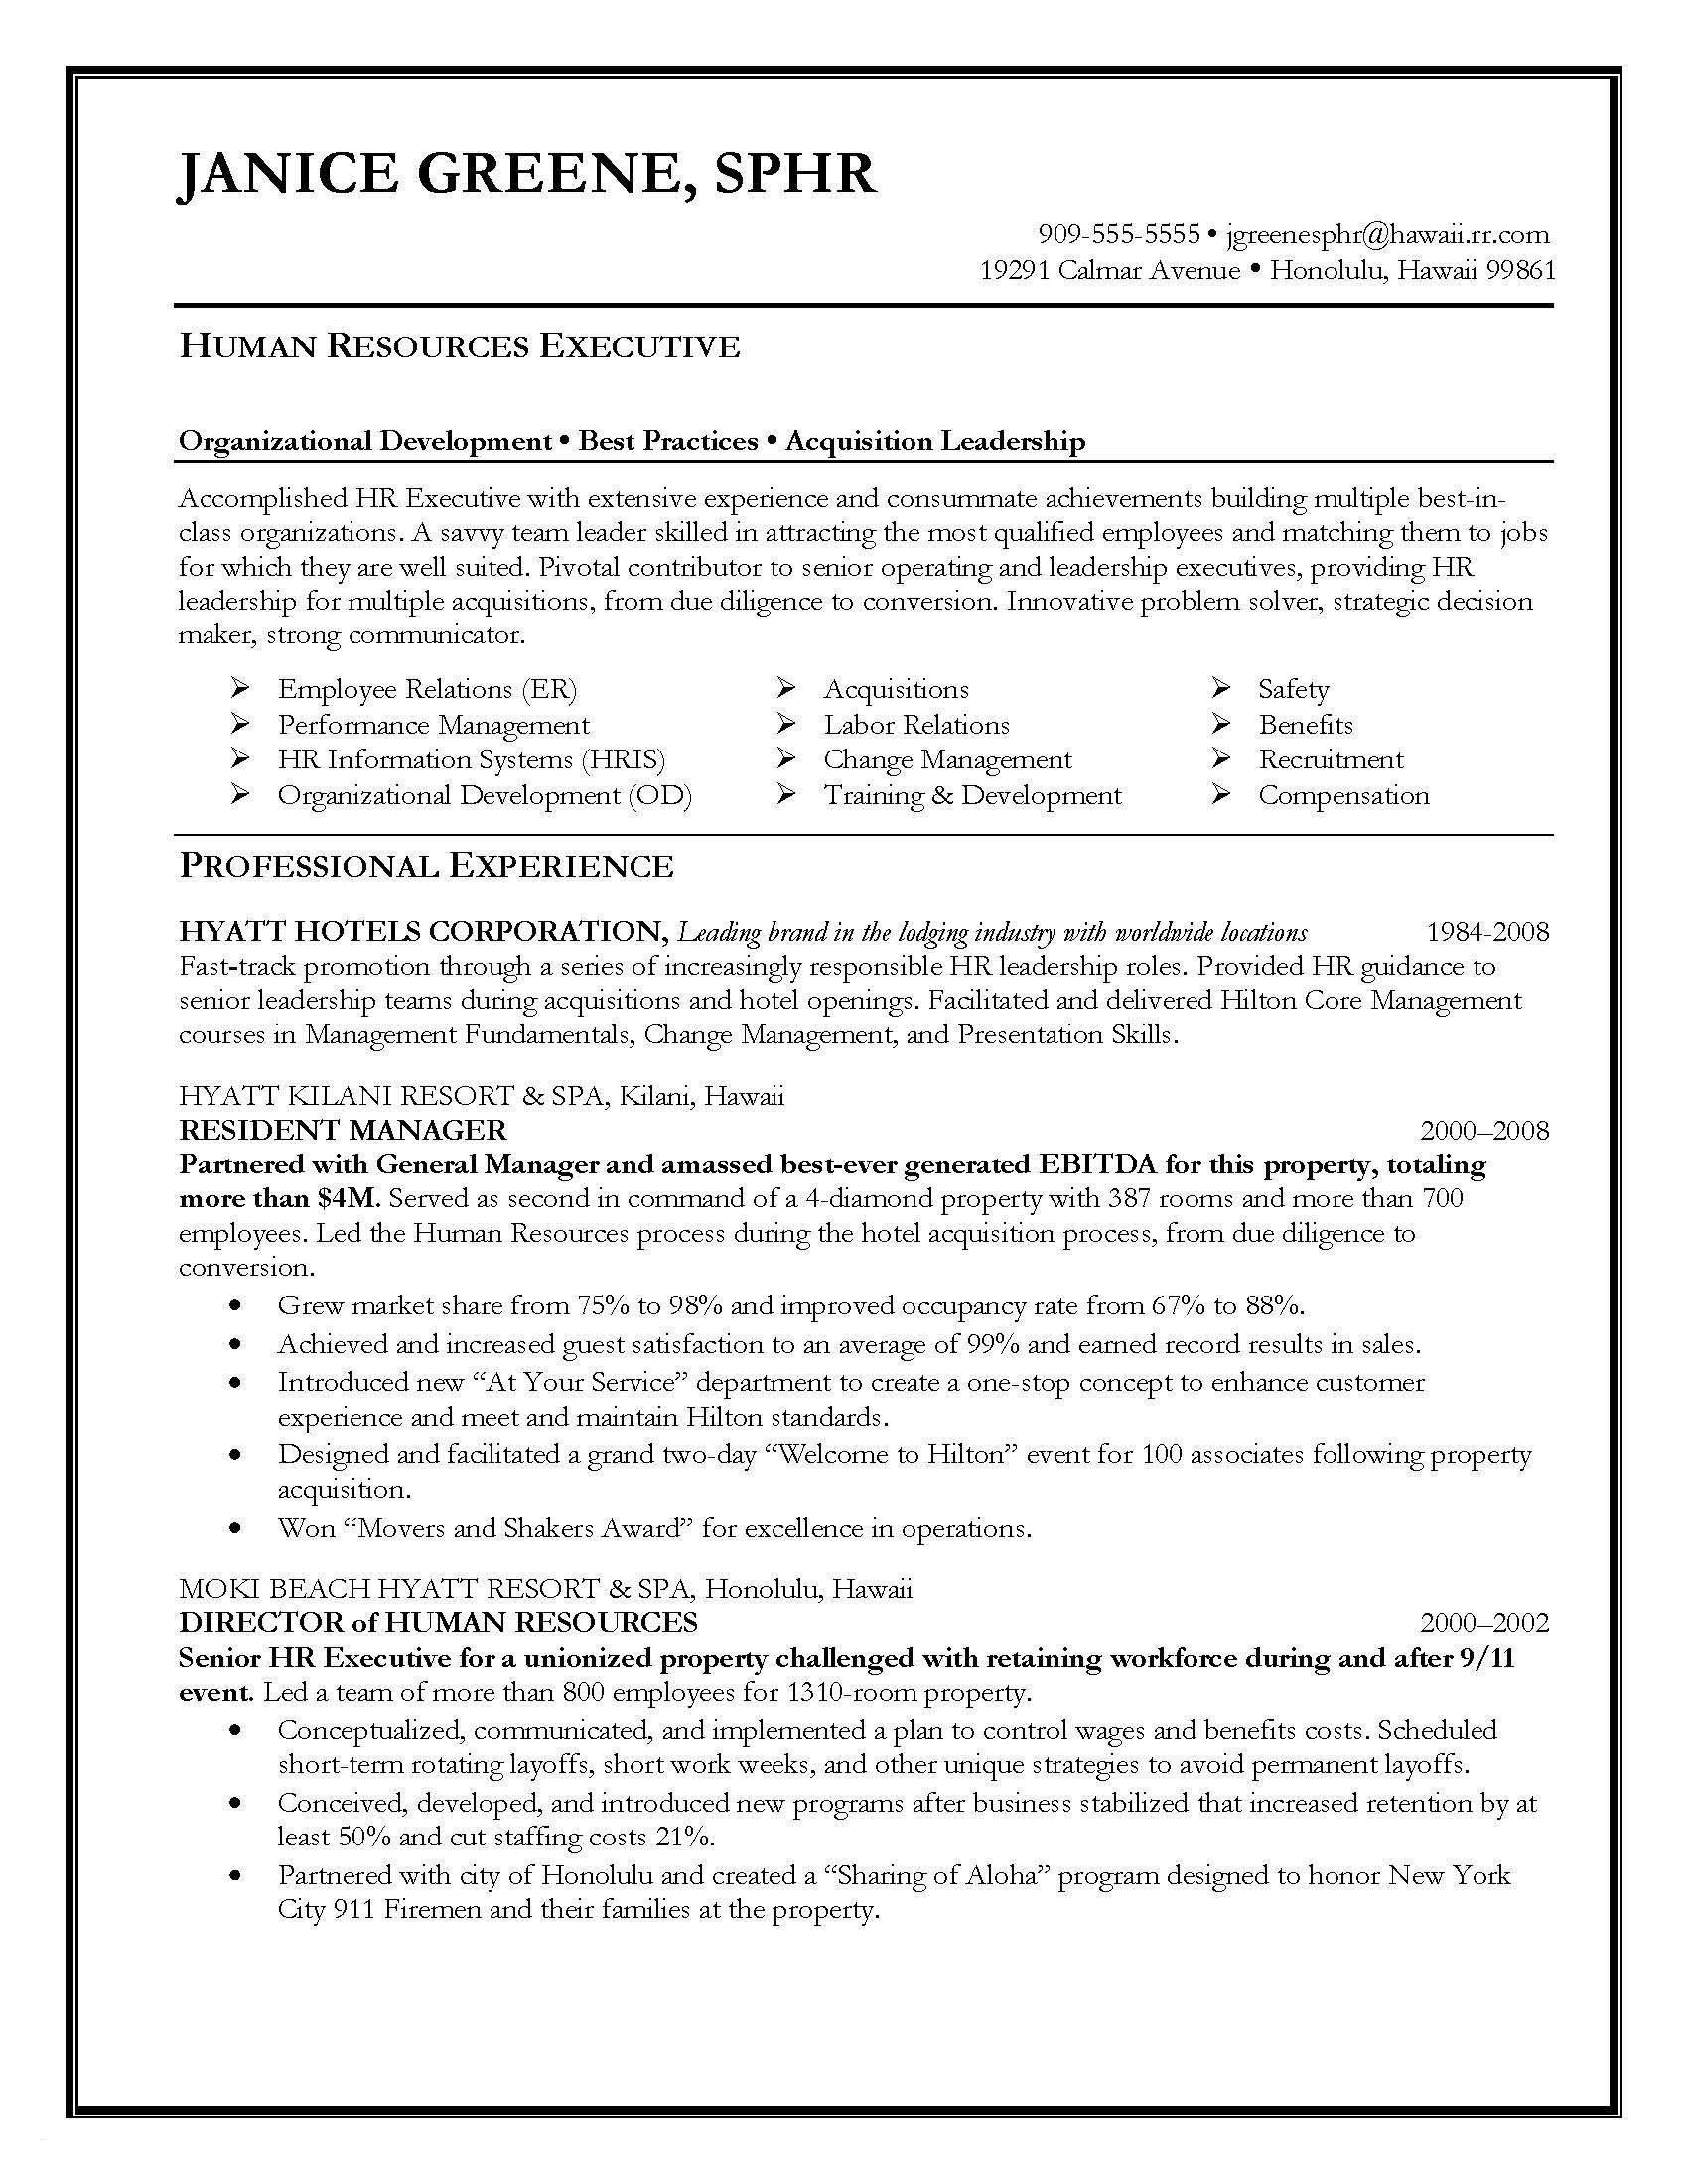 Best Resume Services - 25 Technical Resume Writer